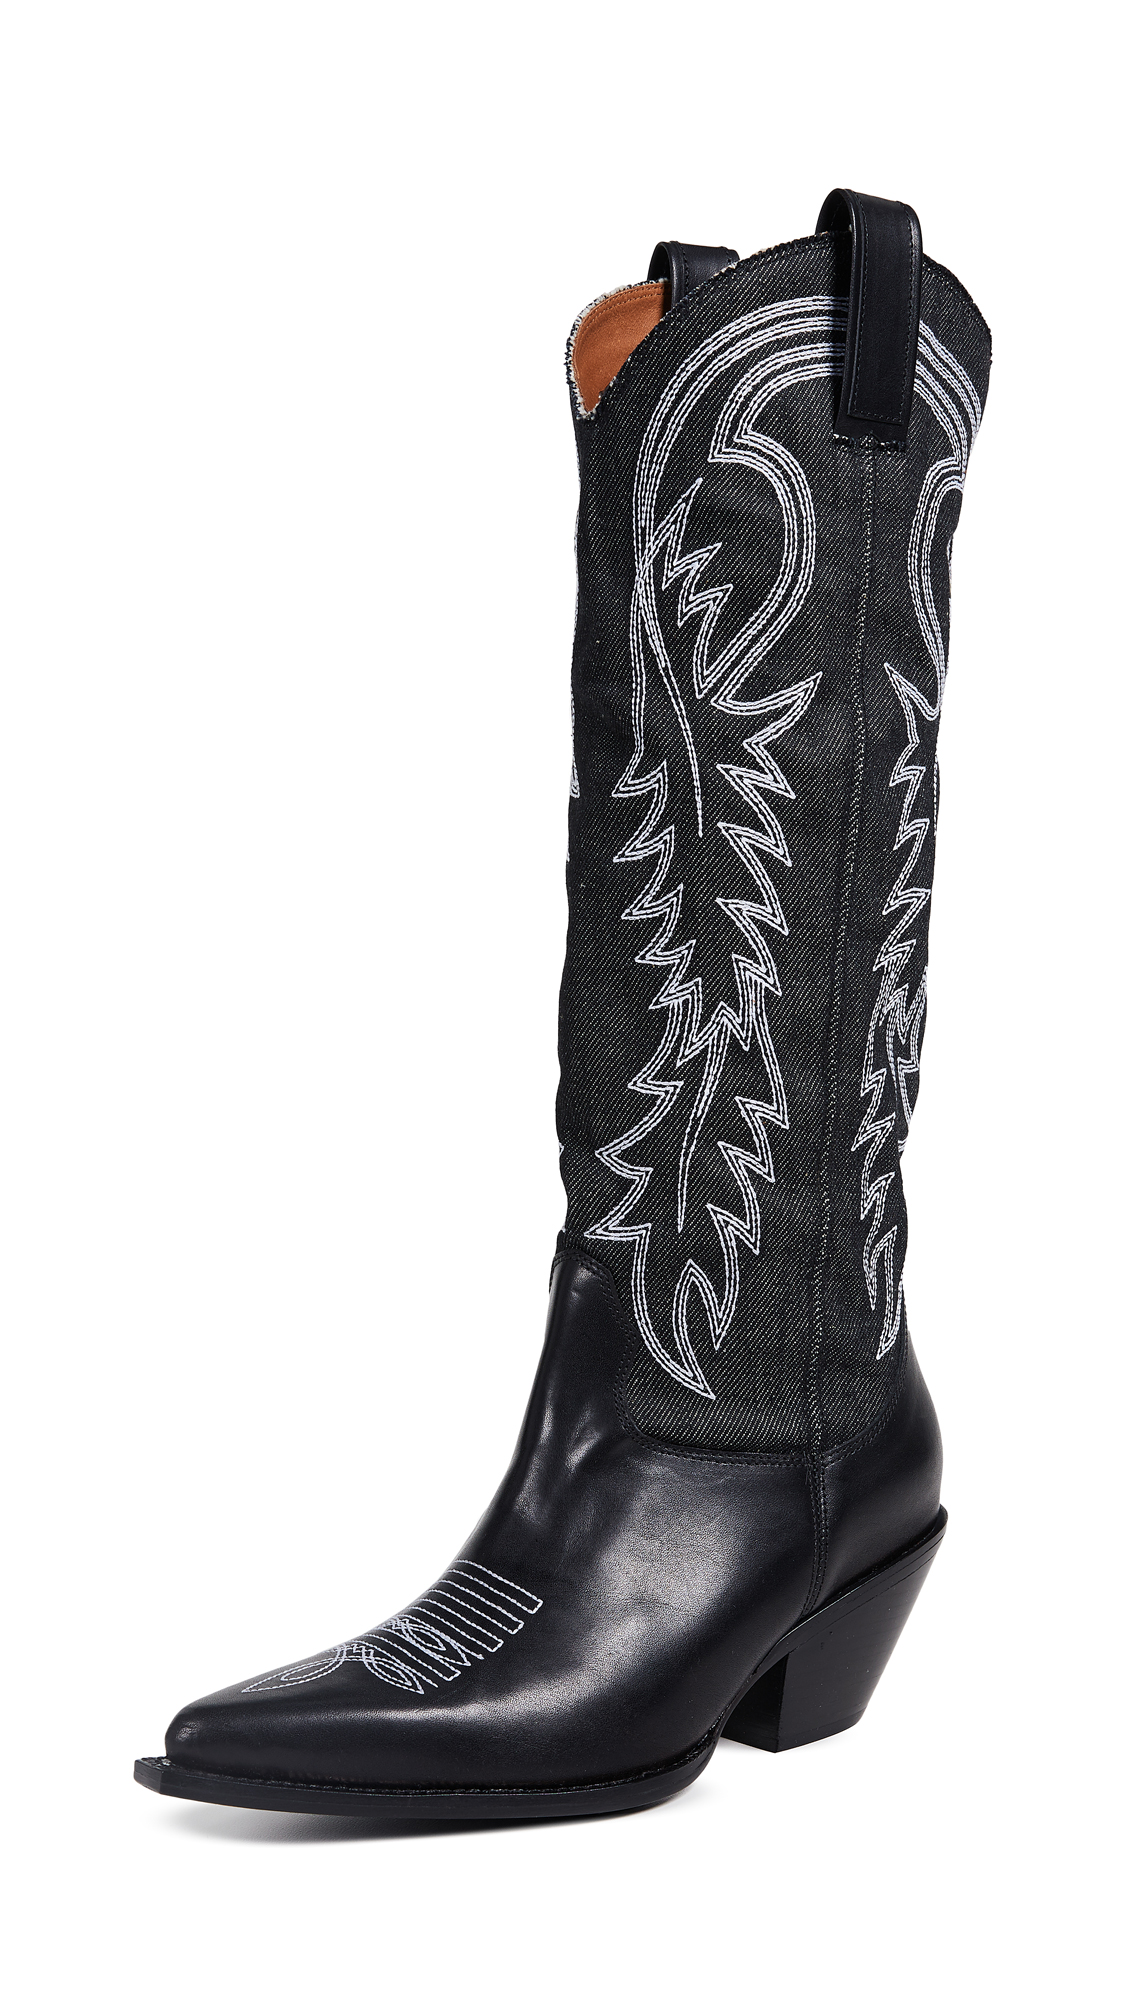 Photo of R13 Mid Straight Cowboy Boots - buy R13 footwear online